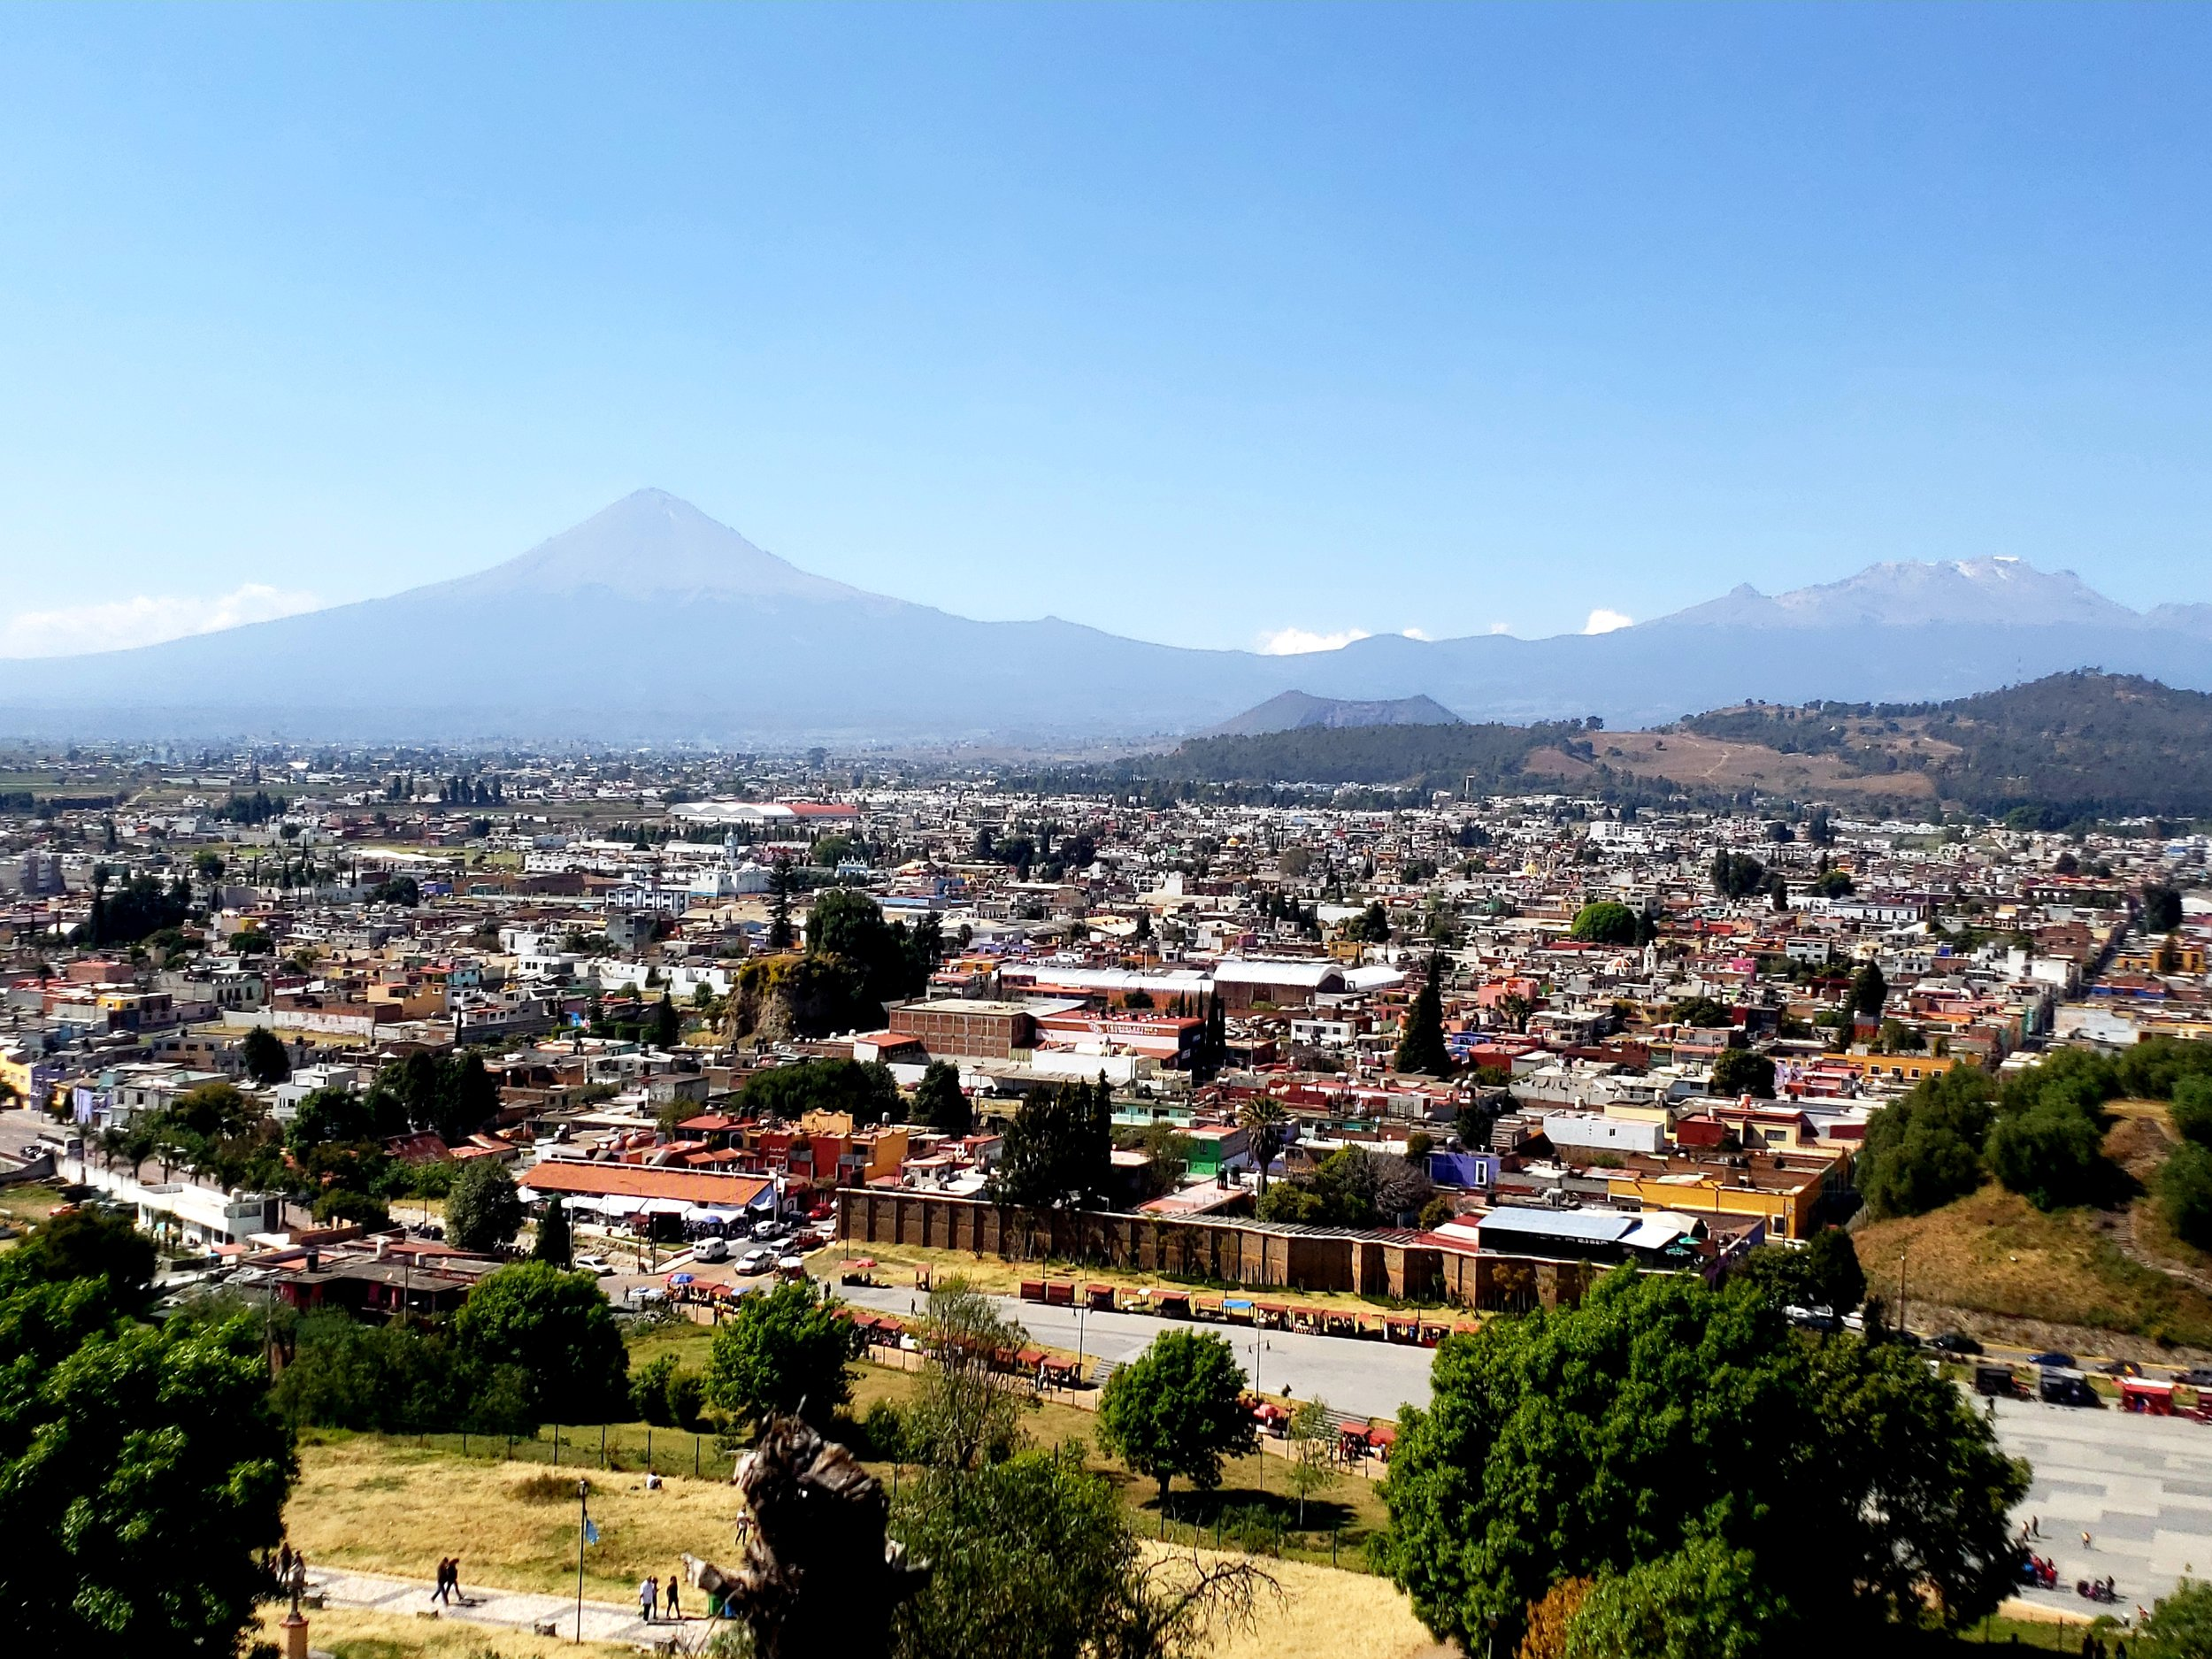 Popa - erupting volcano - seen from the pyramid in Cholula